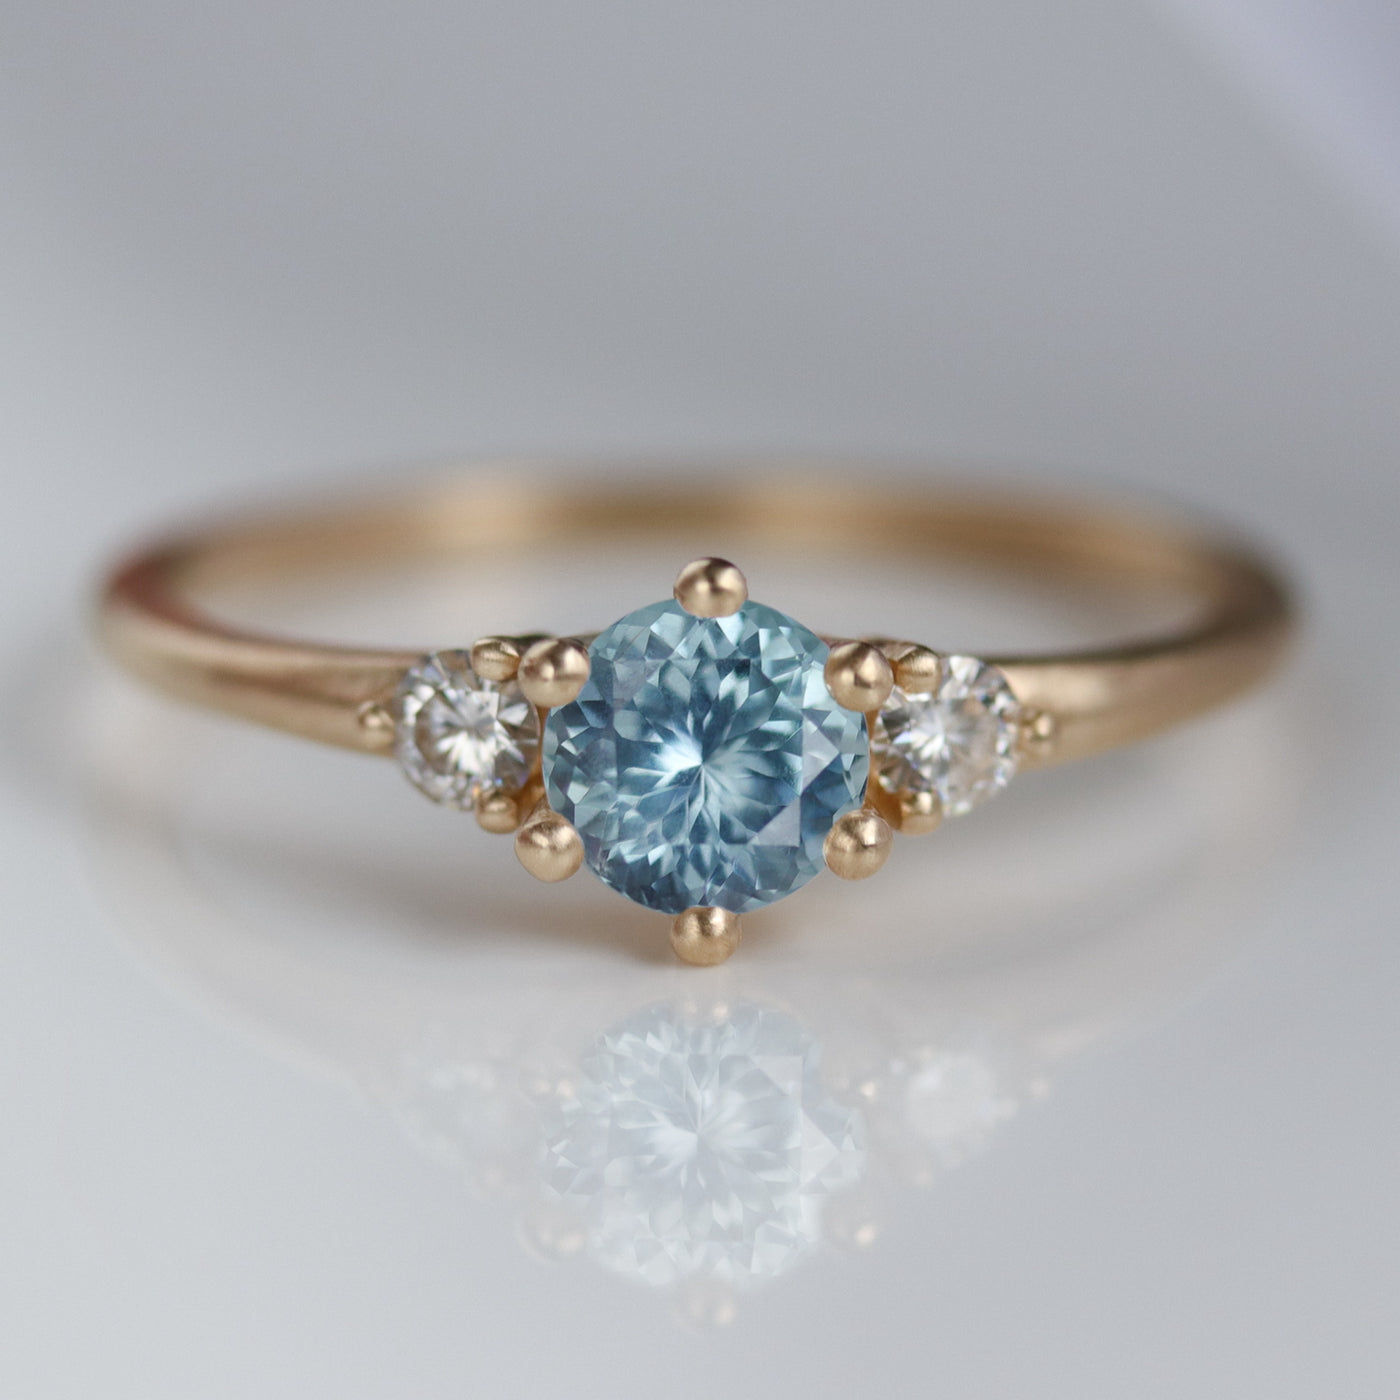 Prong-set Three Stone Ring with Montana Sapphire Center Stone